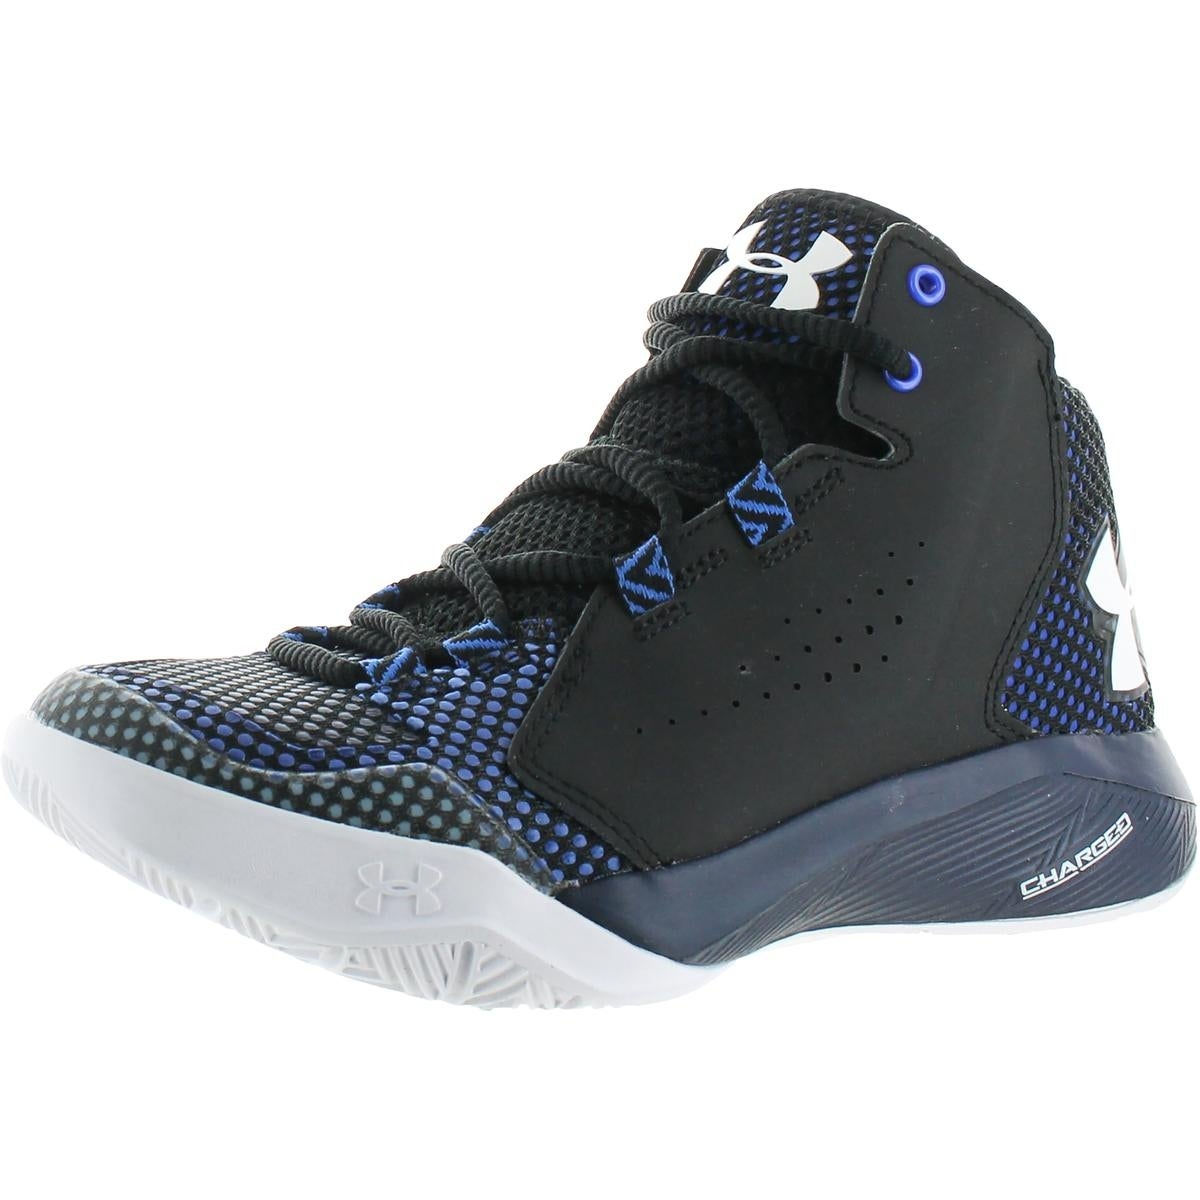 10730415 Under Armour Womens Torch Fade Basketball Shoes Mesh Charged